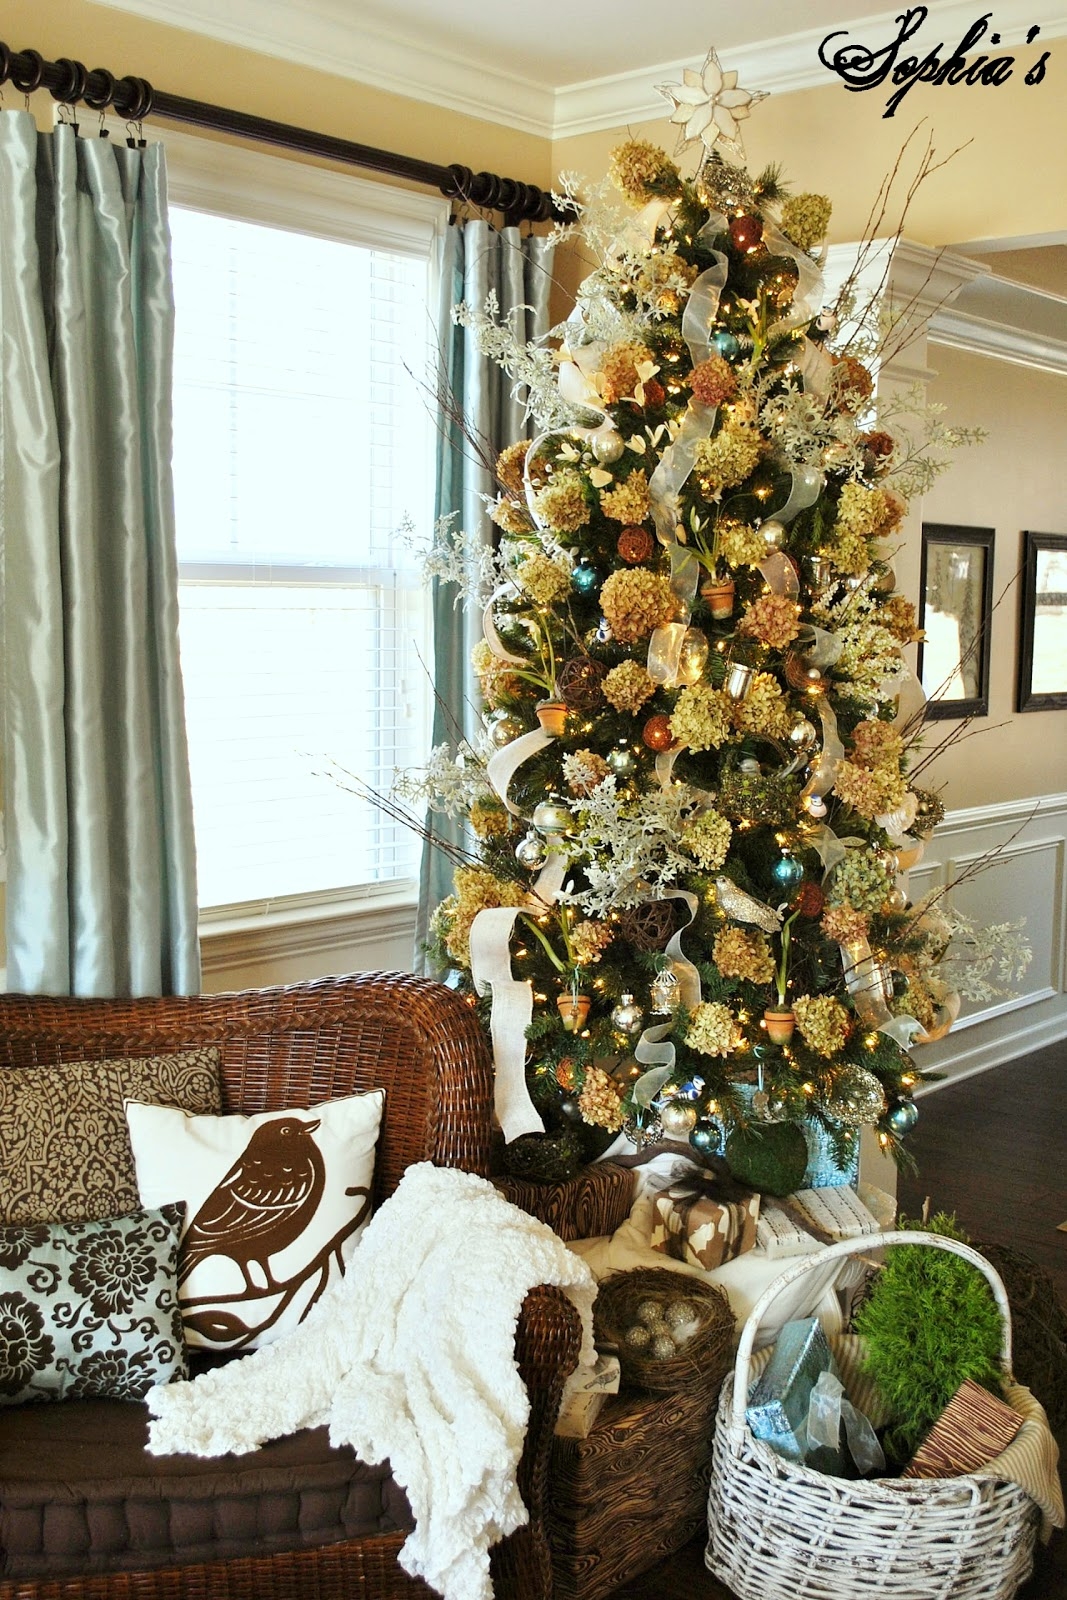 Garden-Inspired Christmas Tree